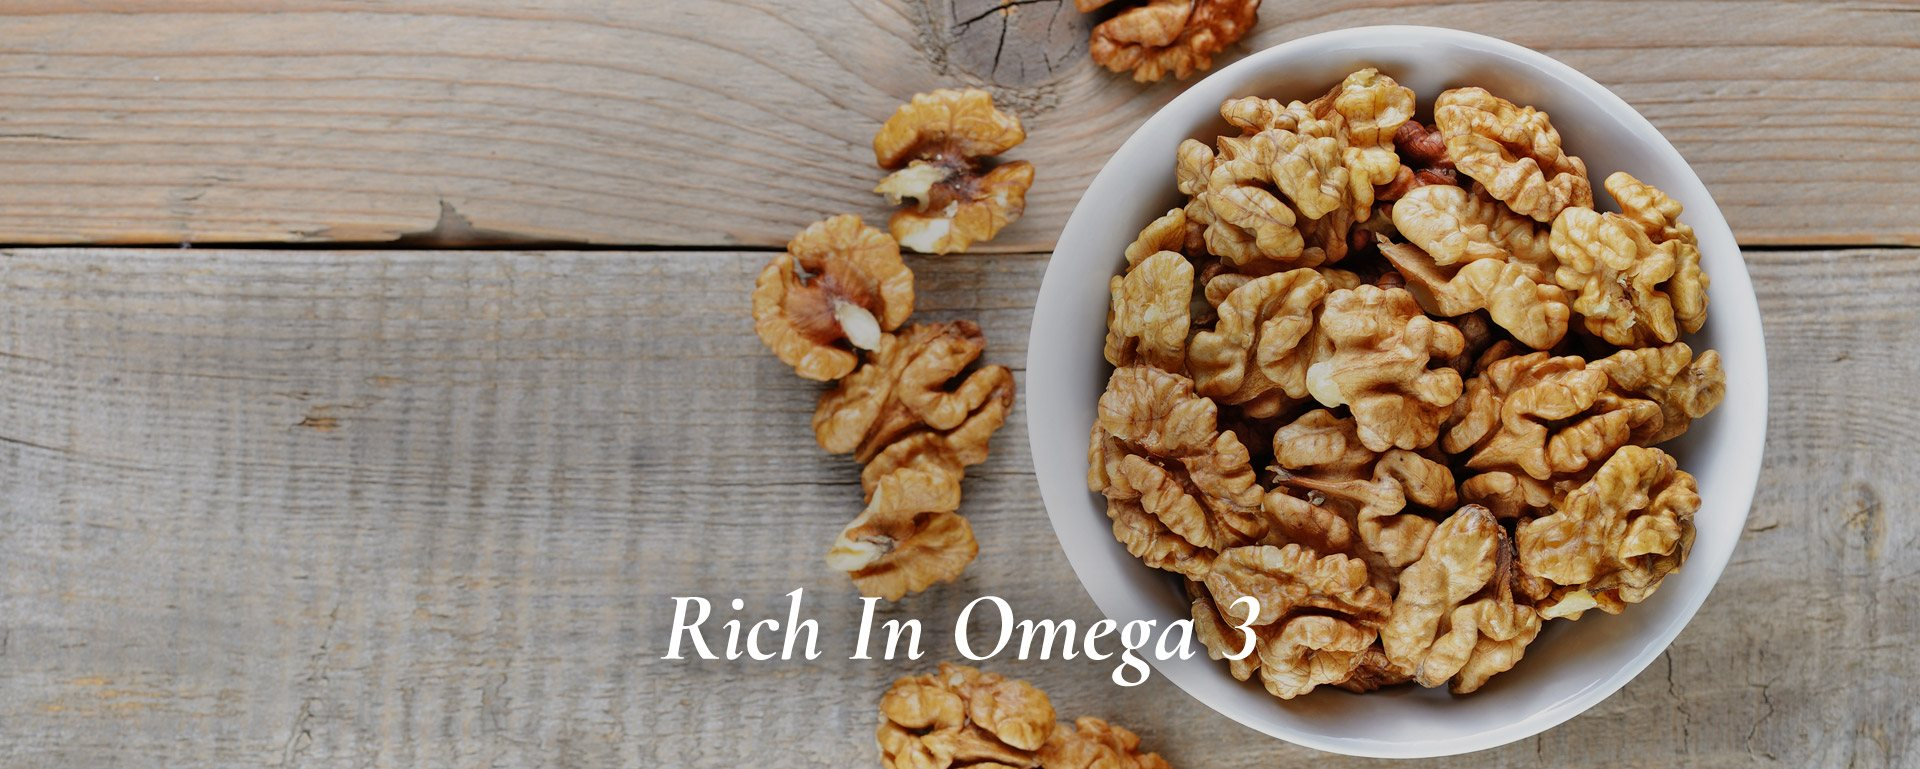 Rich in omega 3, walnuts have immense benefits for our brain.